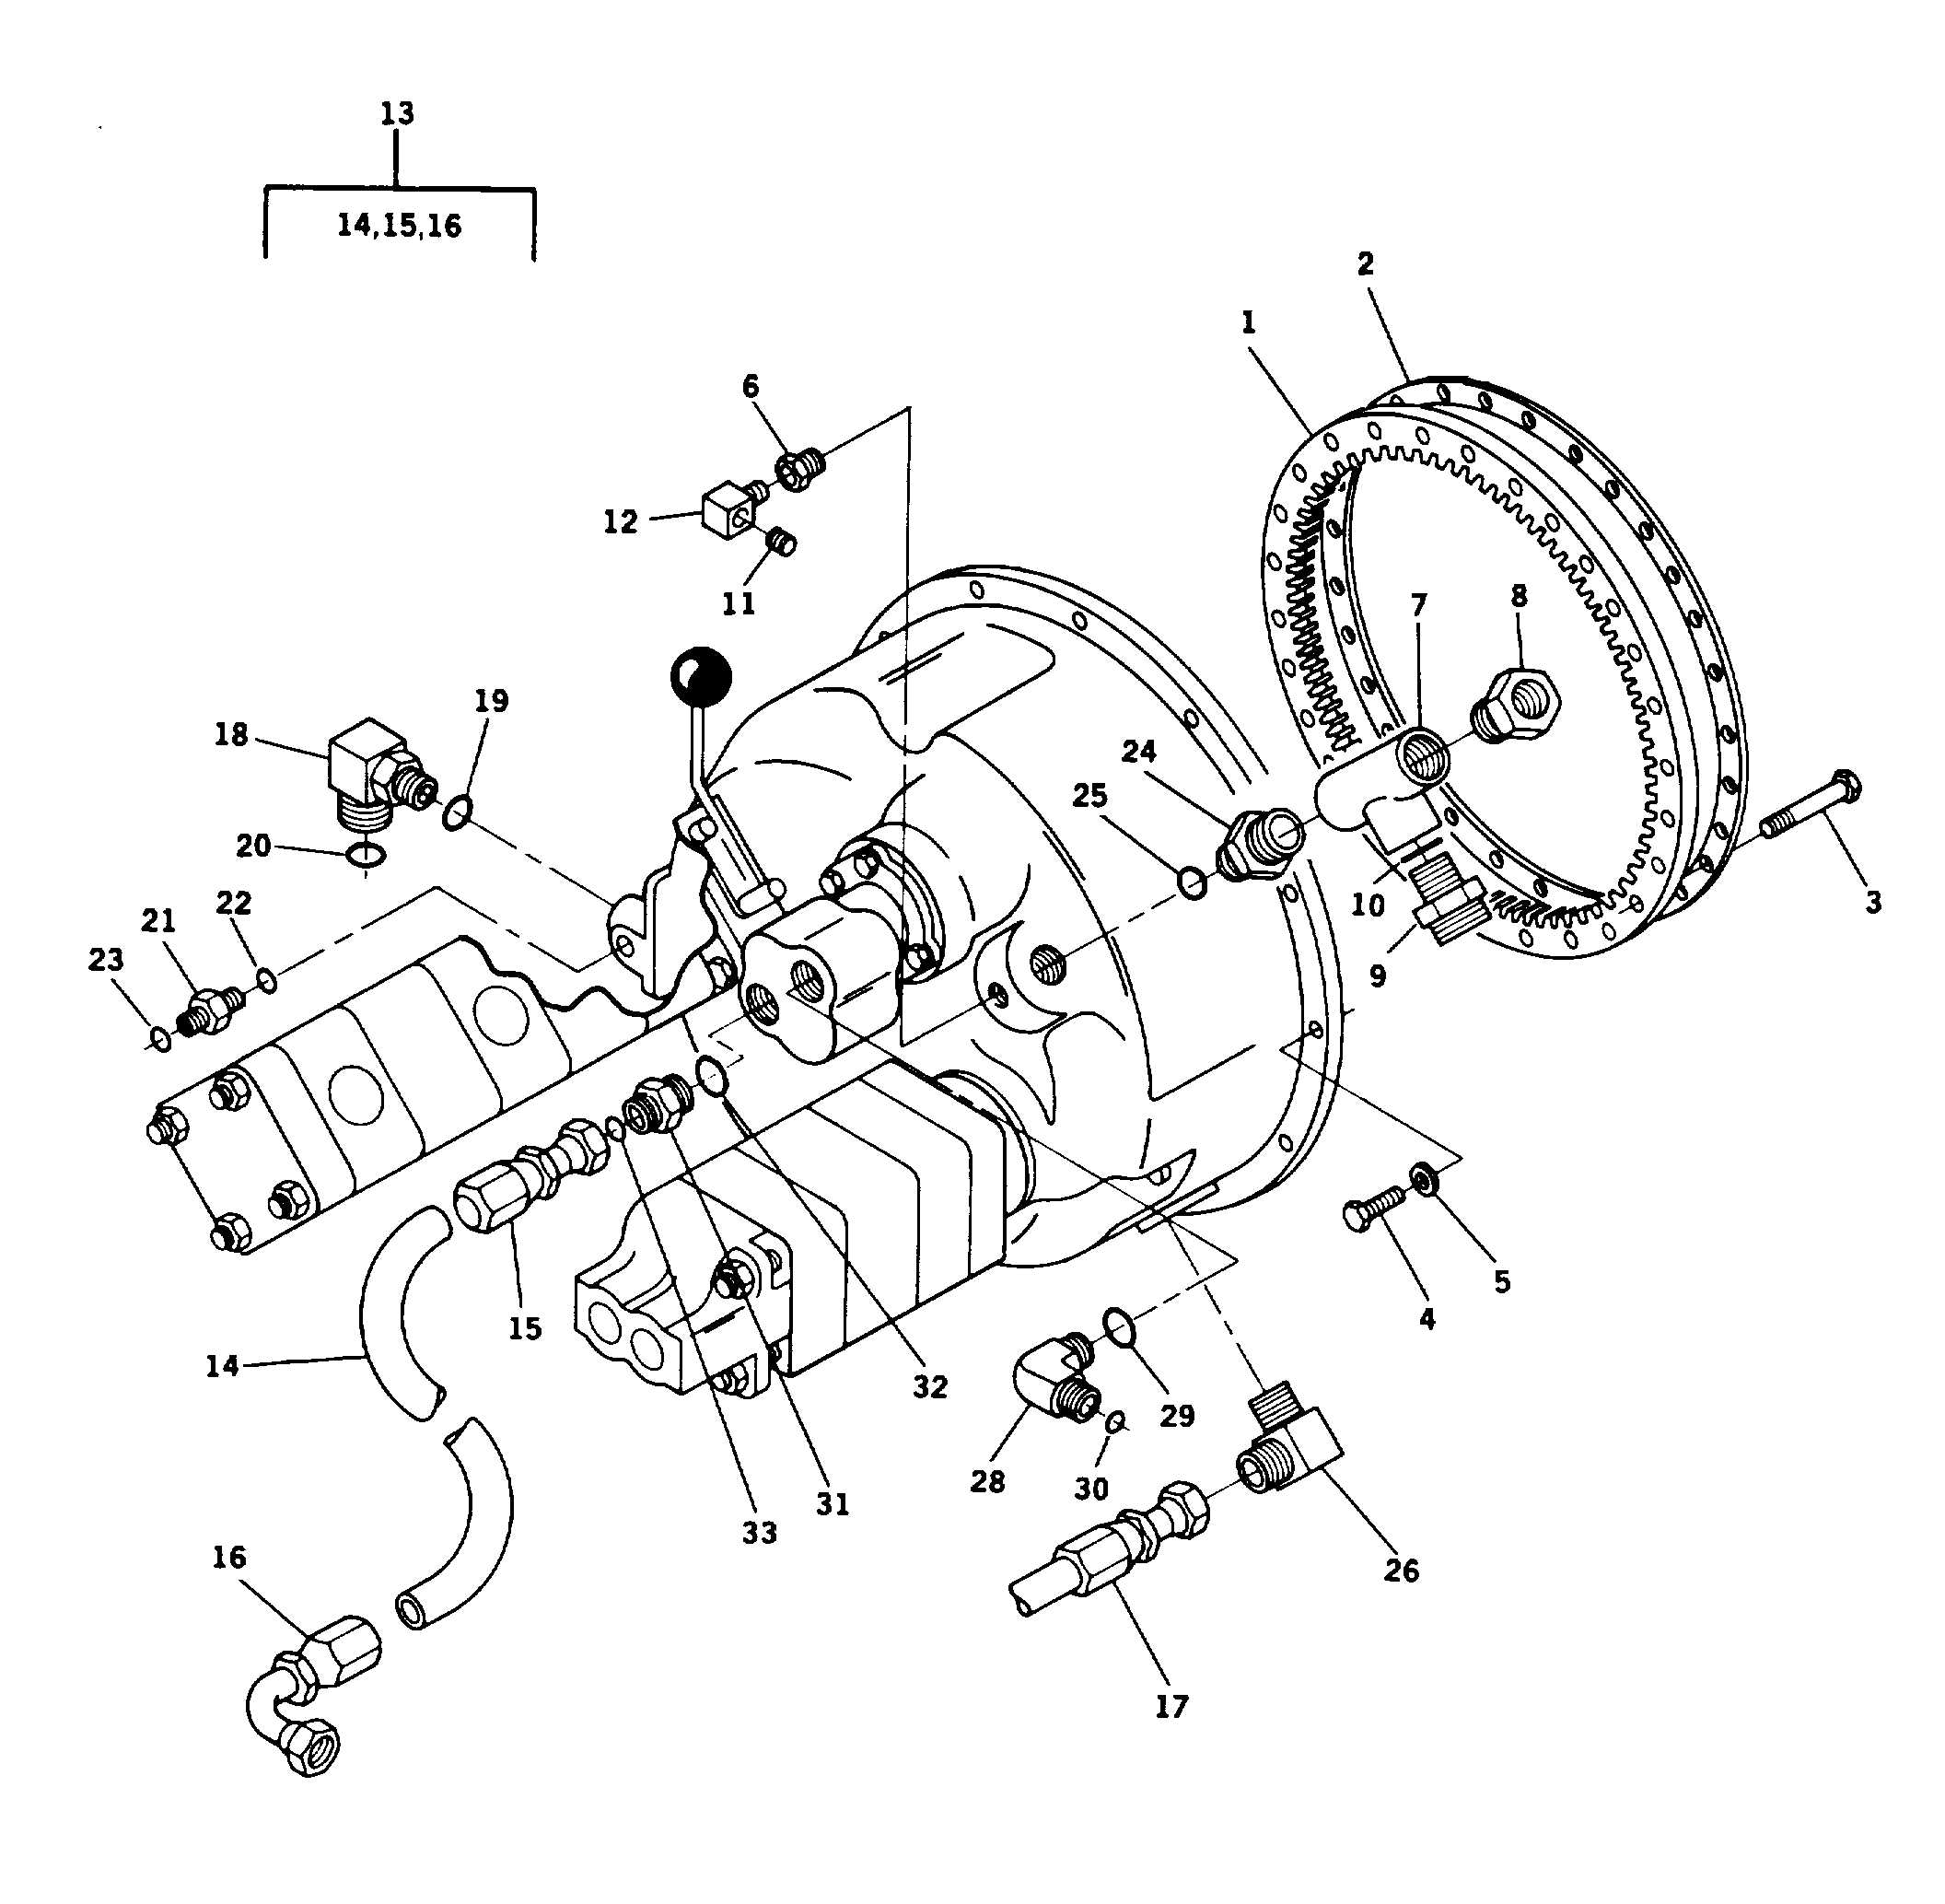 Figure 68. Torque Converter Charge Pump Lines Assembly